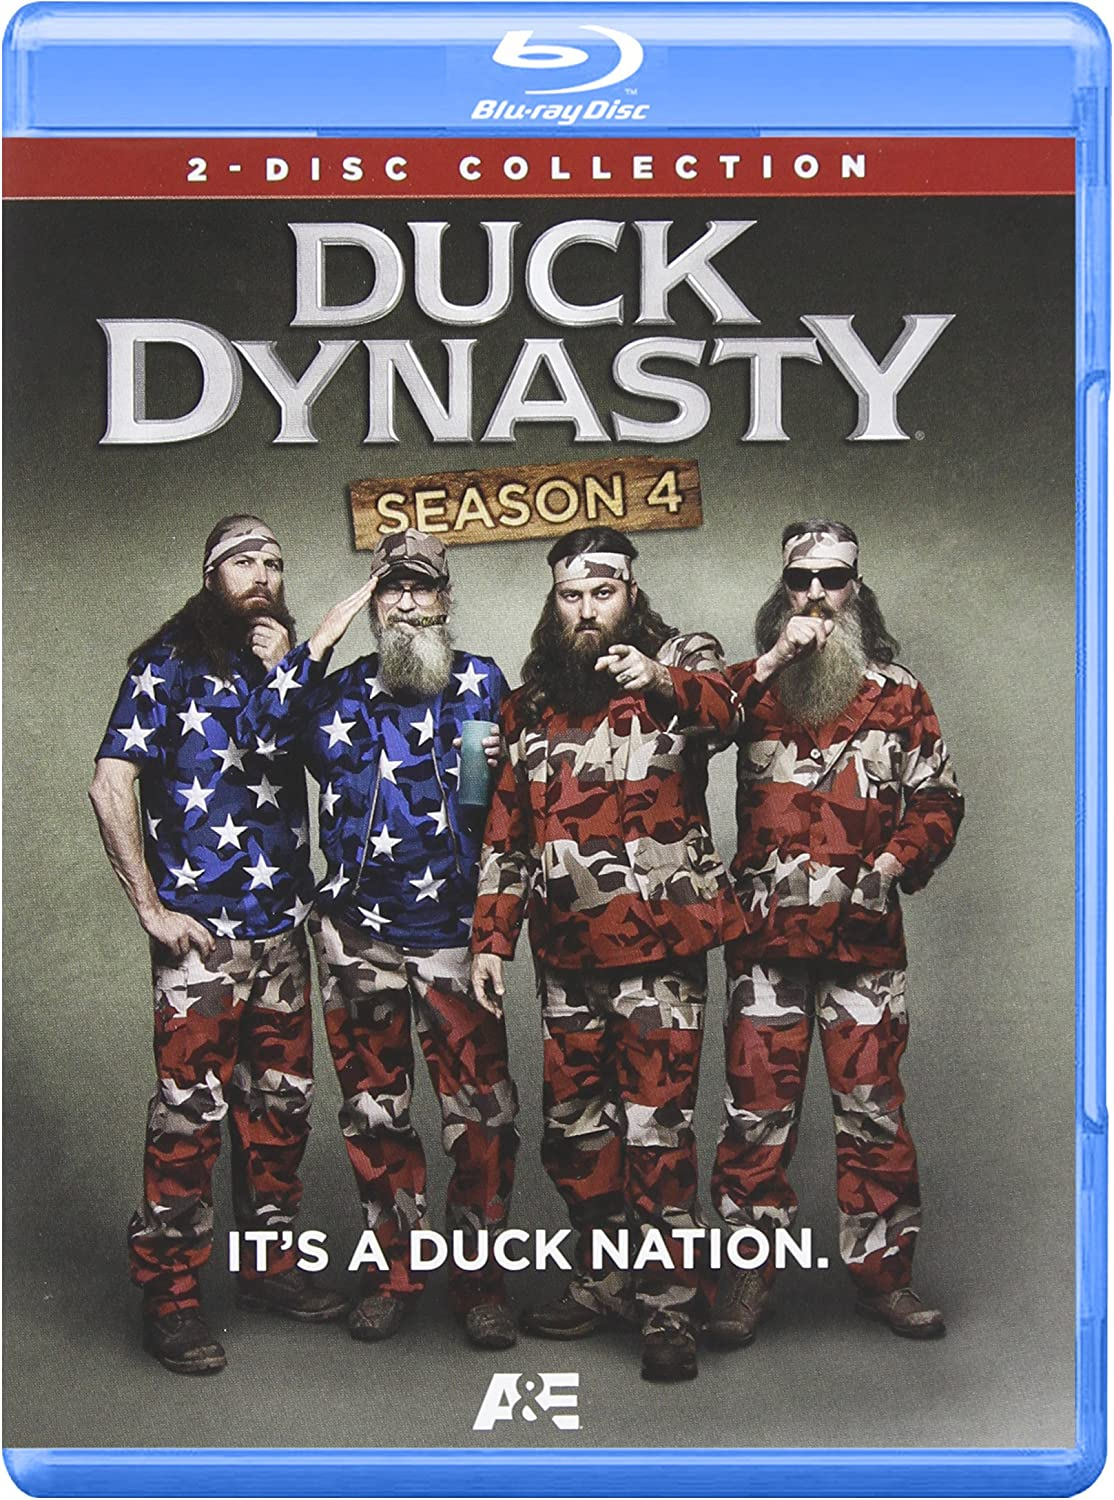 DUCK DYNASTY T Shirt NEW Size XL Robertson That/'s Fact Jack  Nation Boys A/&E